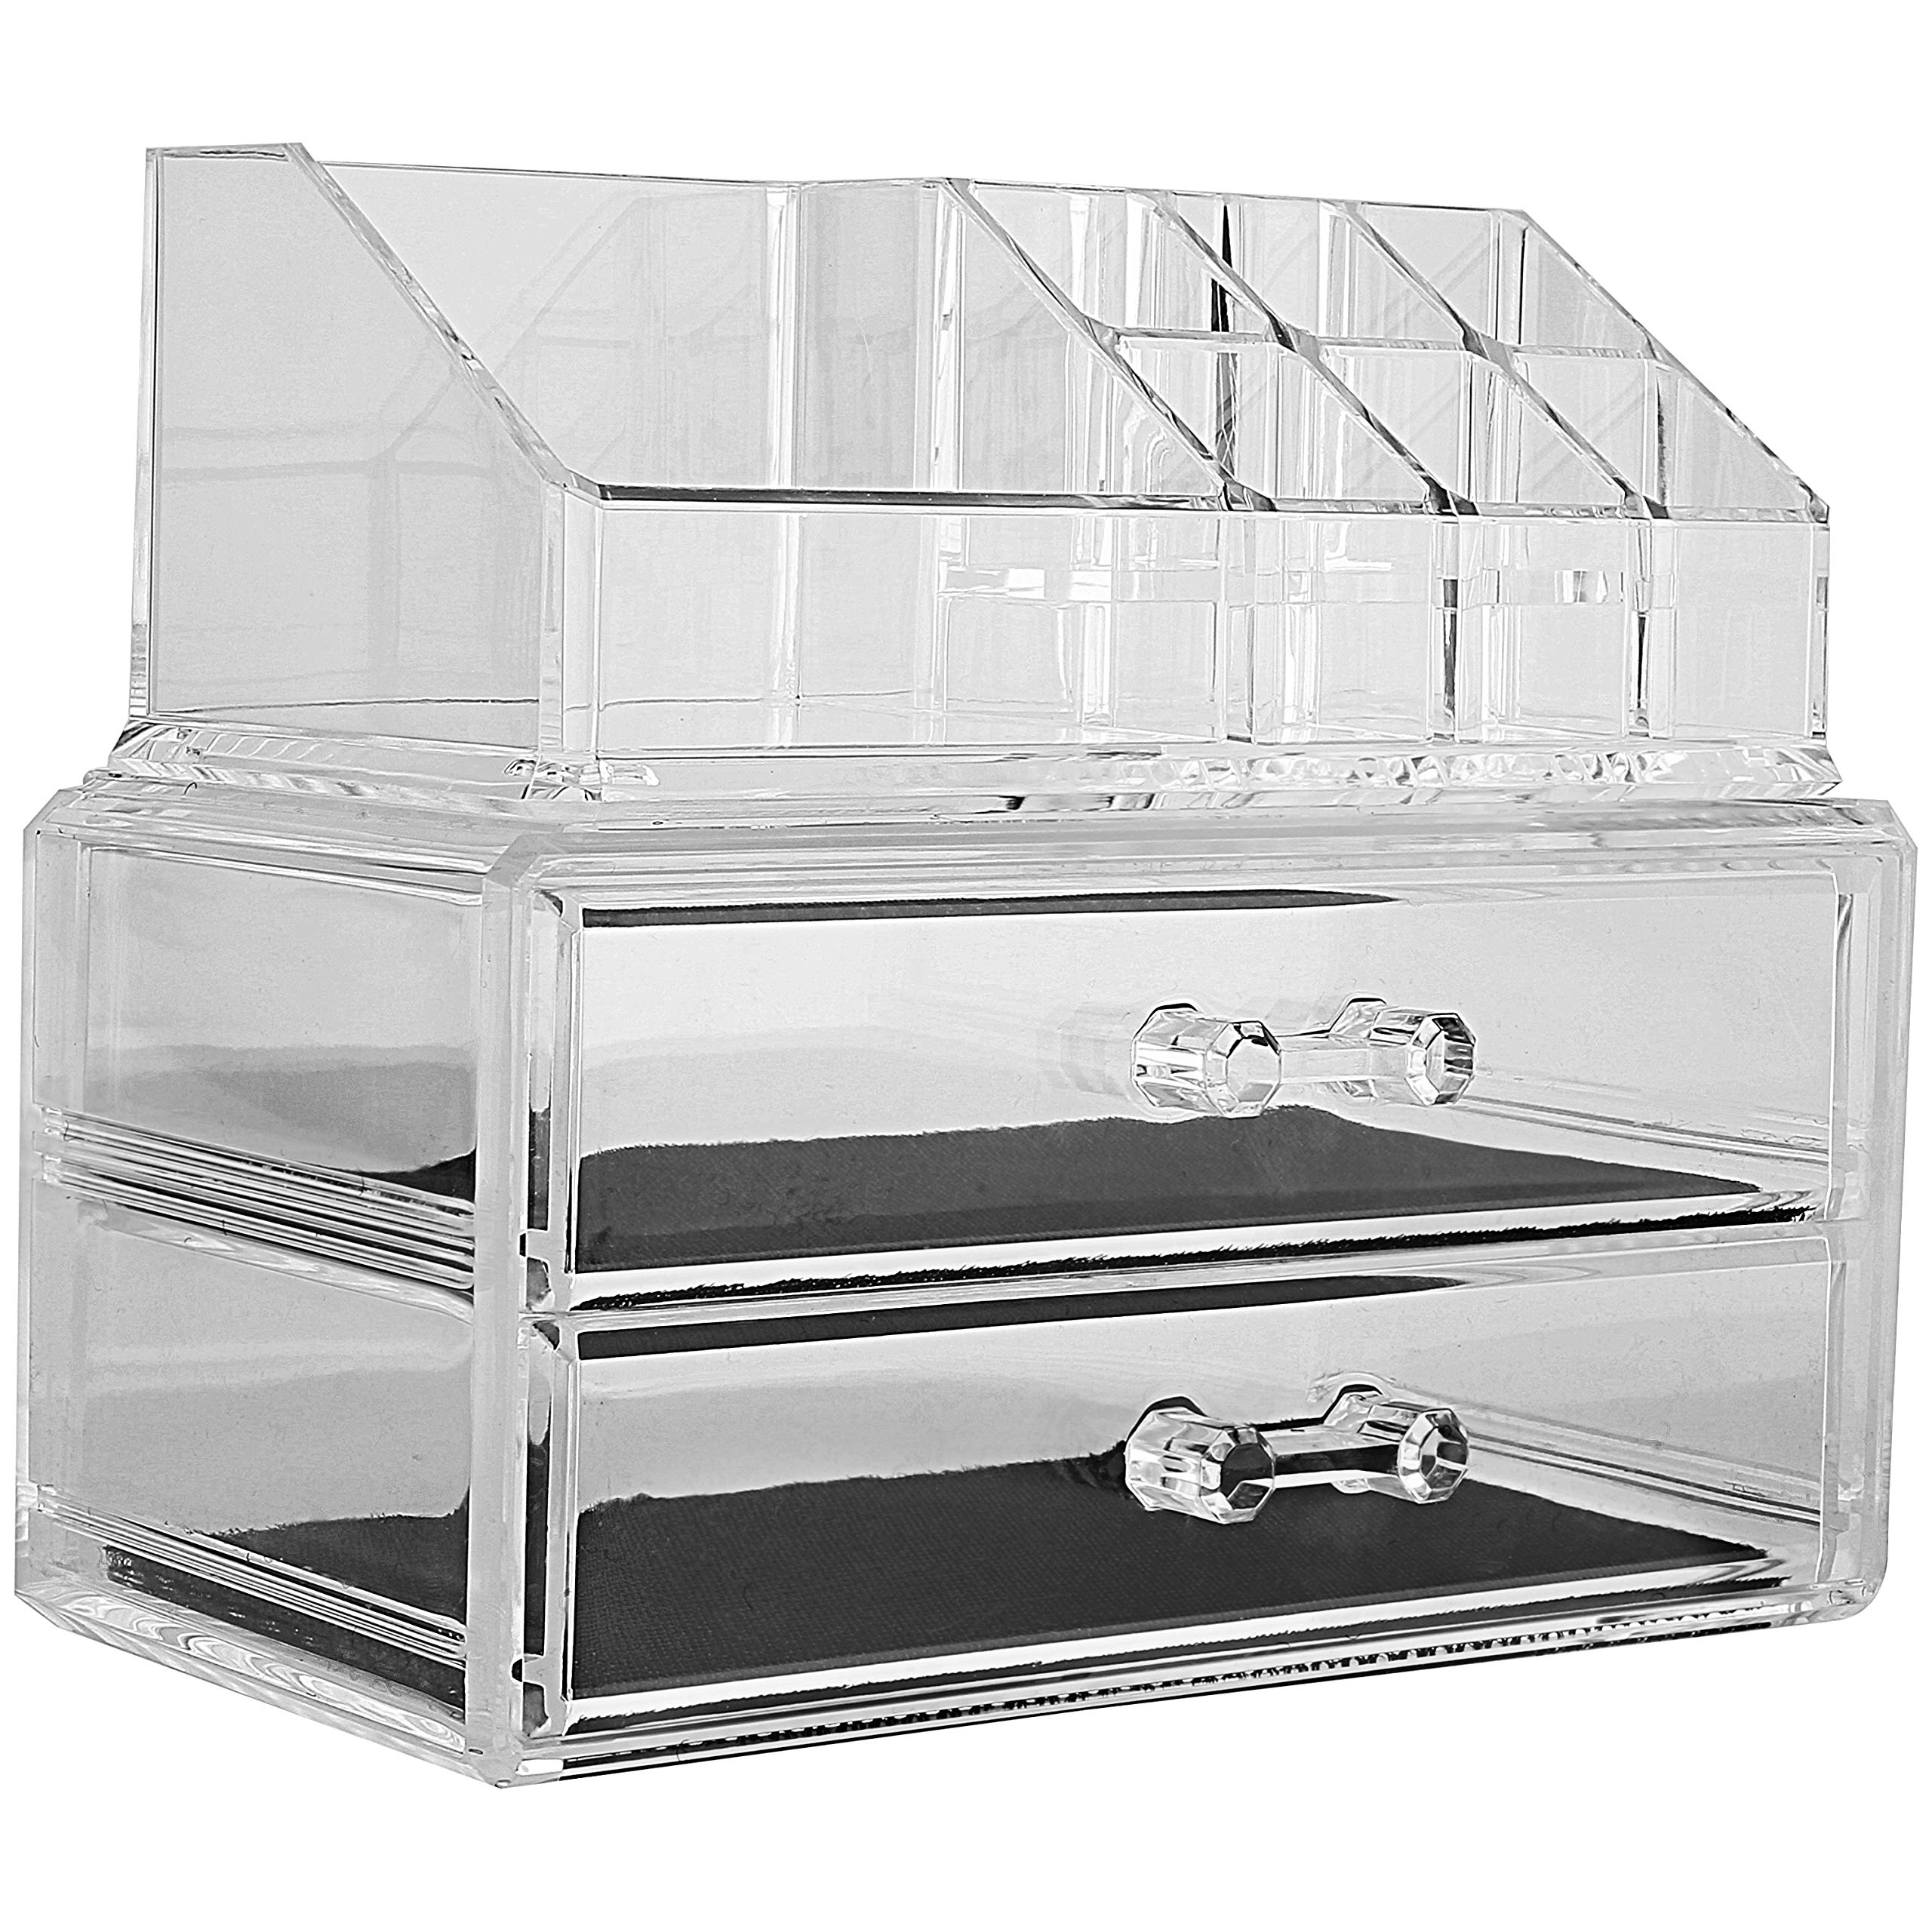 MCB Home Essentials-Acrylic Makeup & Cosmetic Jewelry Organizer -Storage Display Box with 2 set of Drawers by Home Essentials